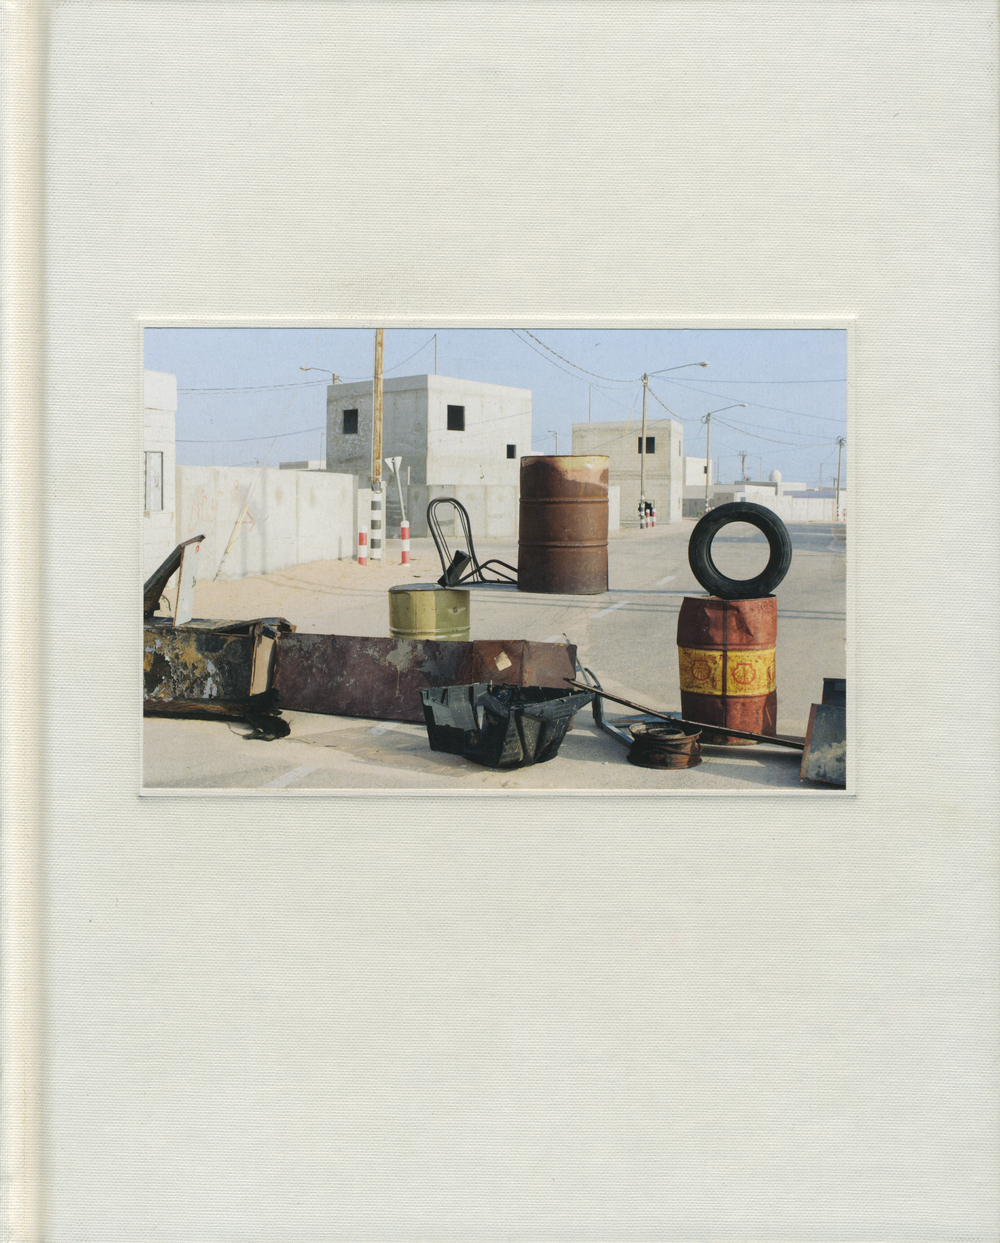 Martin Kollar  Field Trip MACK Books, 2013 english 40,00 €